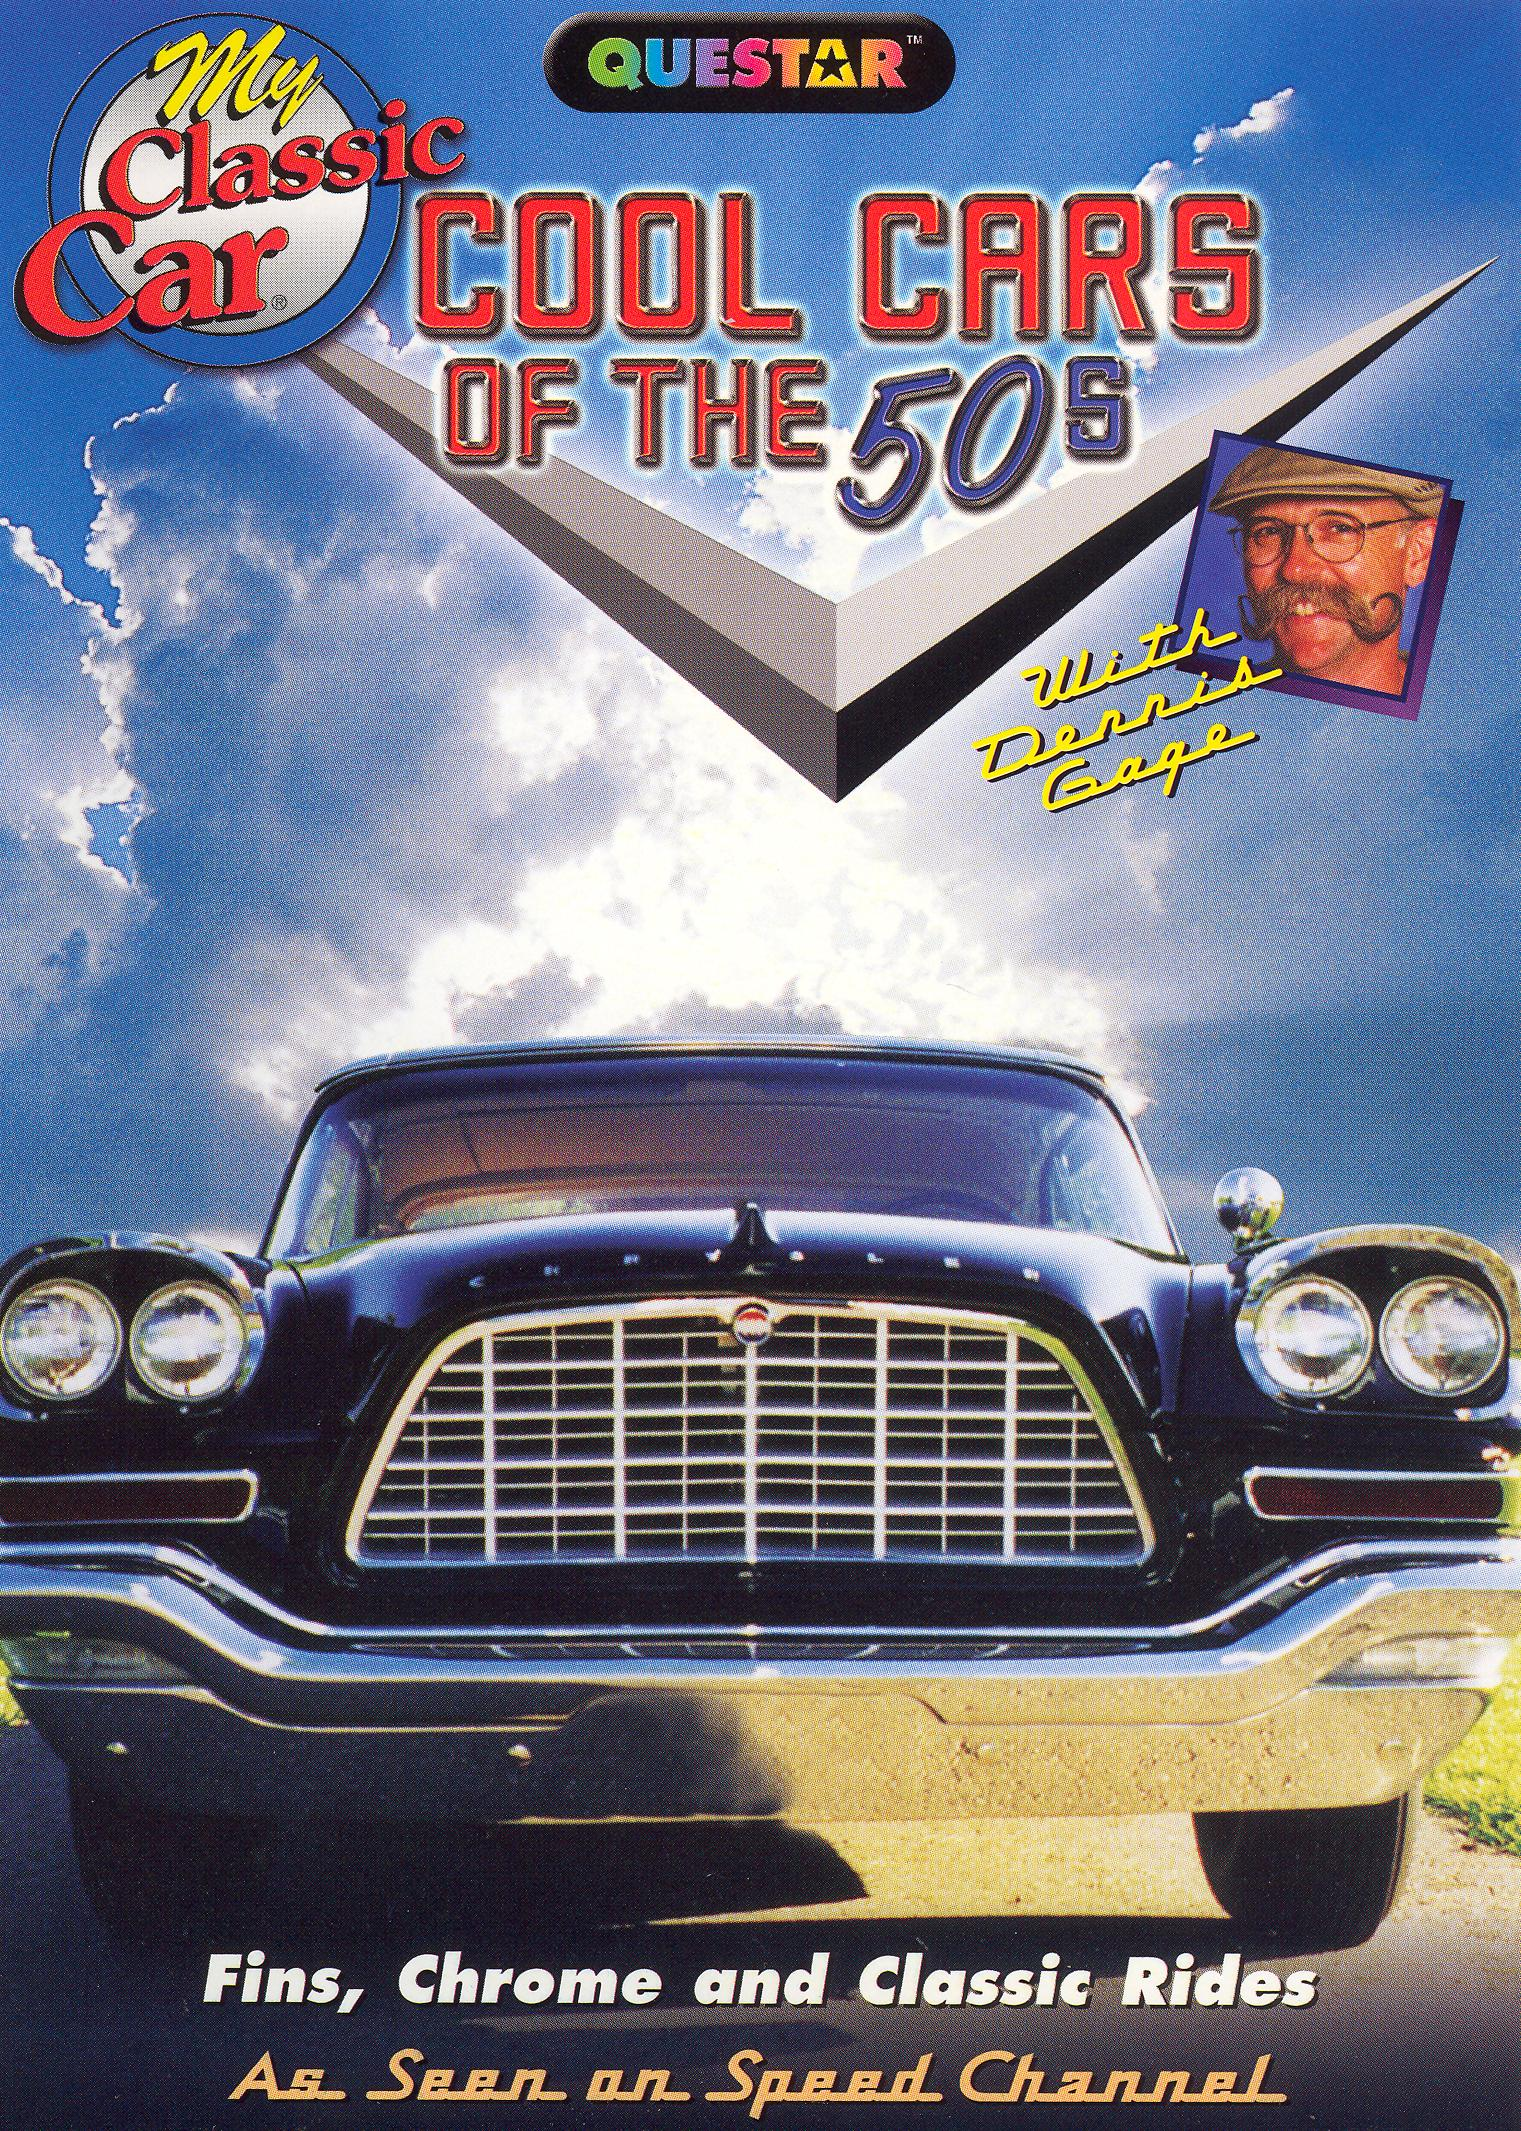 My Classic Car: Cool Cars of the 50's